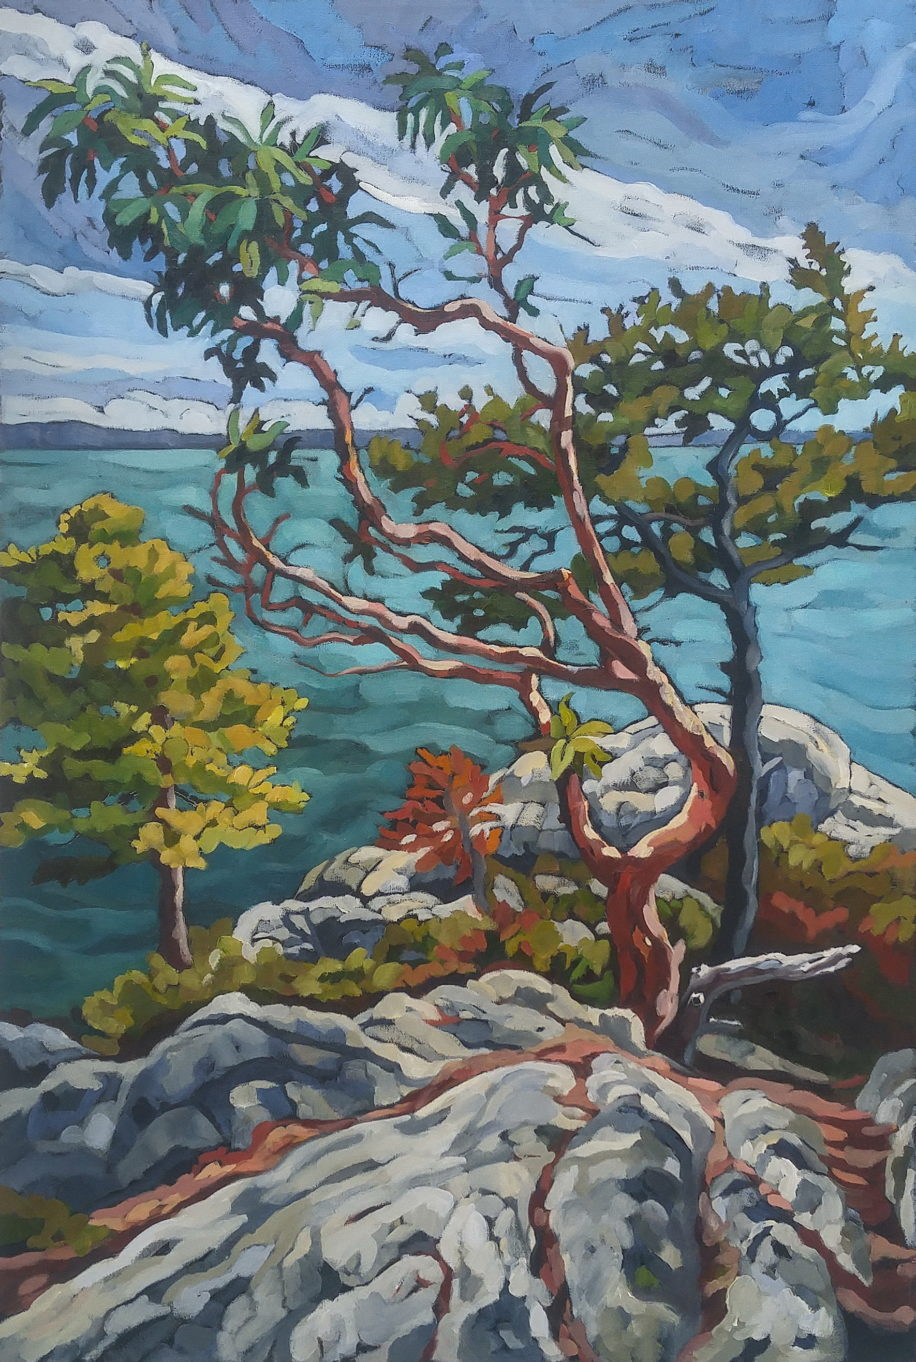 Lone Arbutus by Mary-Jean Butler at The Avenue Gallery, a contemporary fine art gallery in Victoria, BC, Canada.